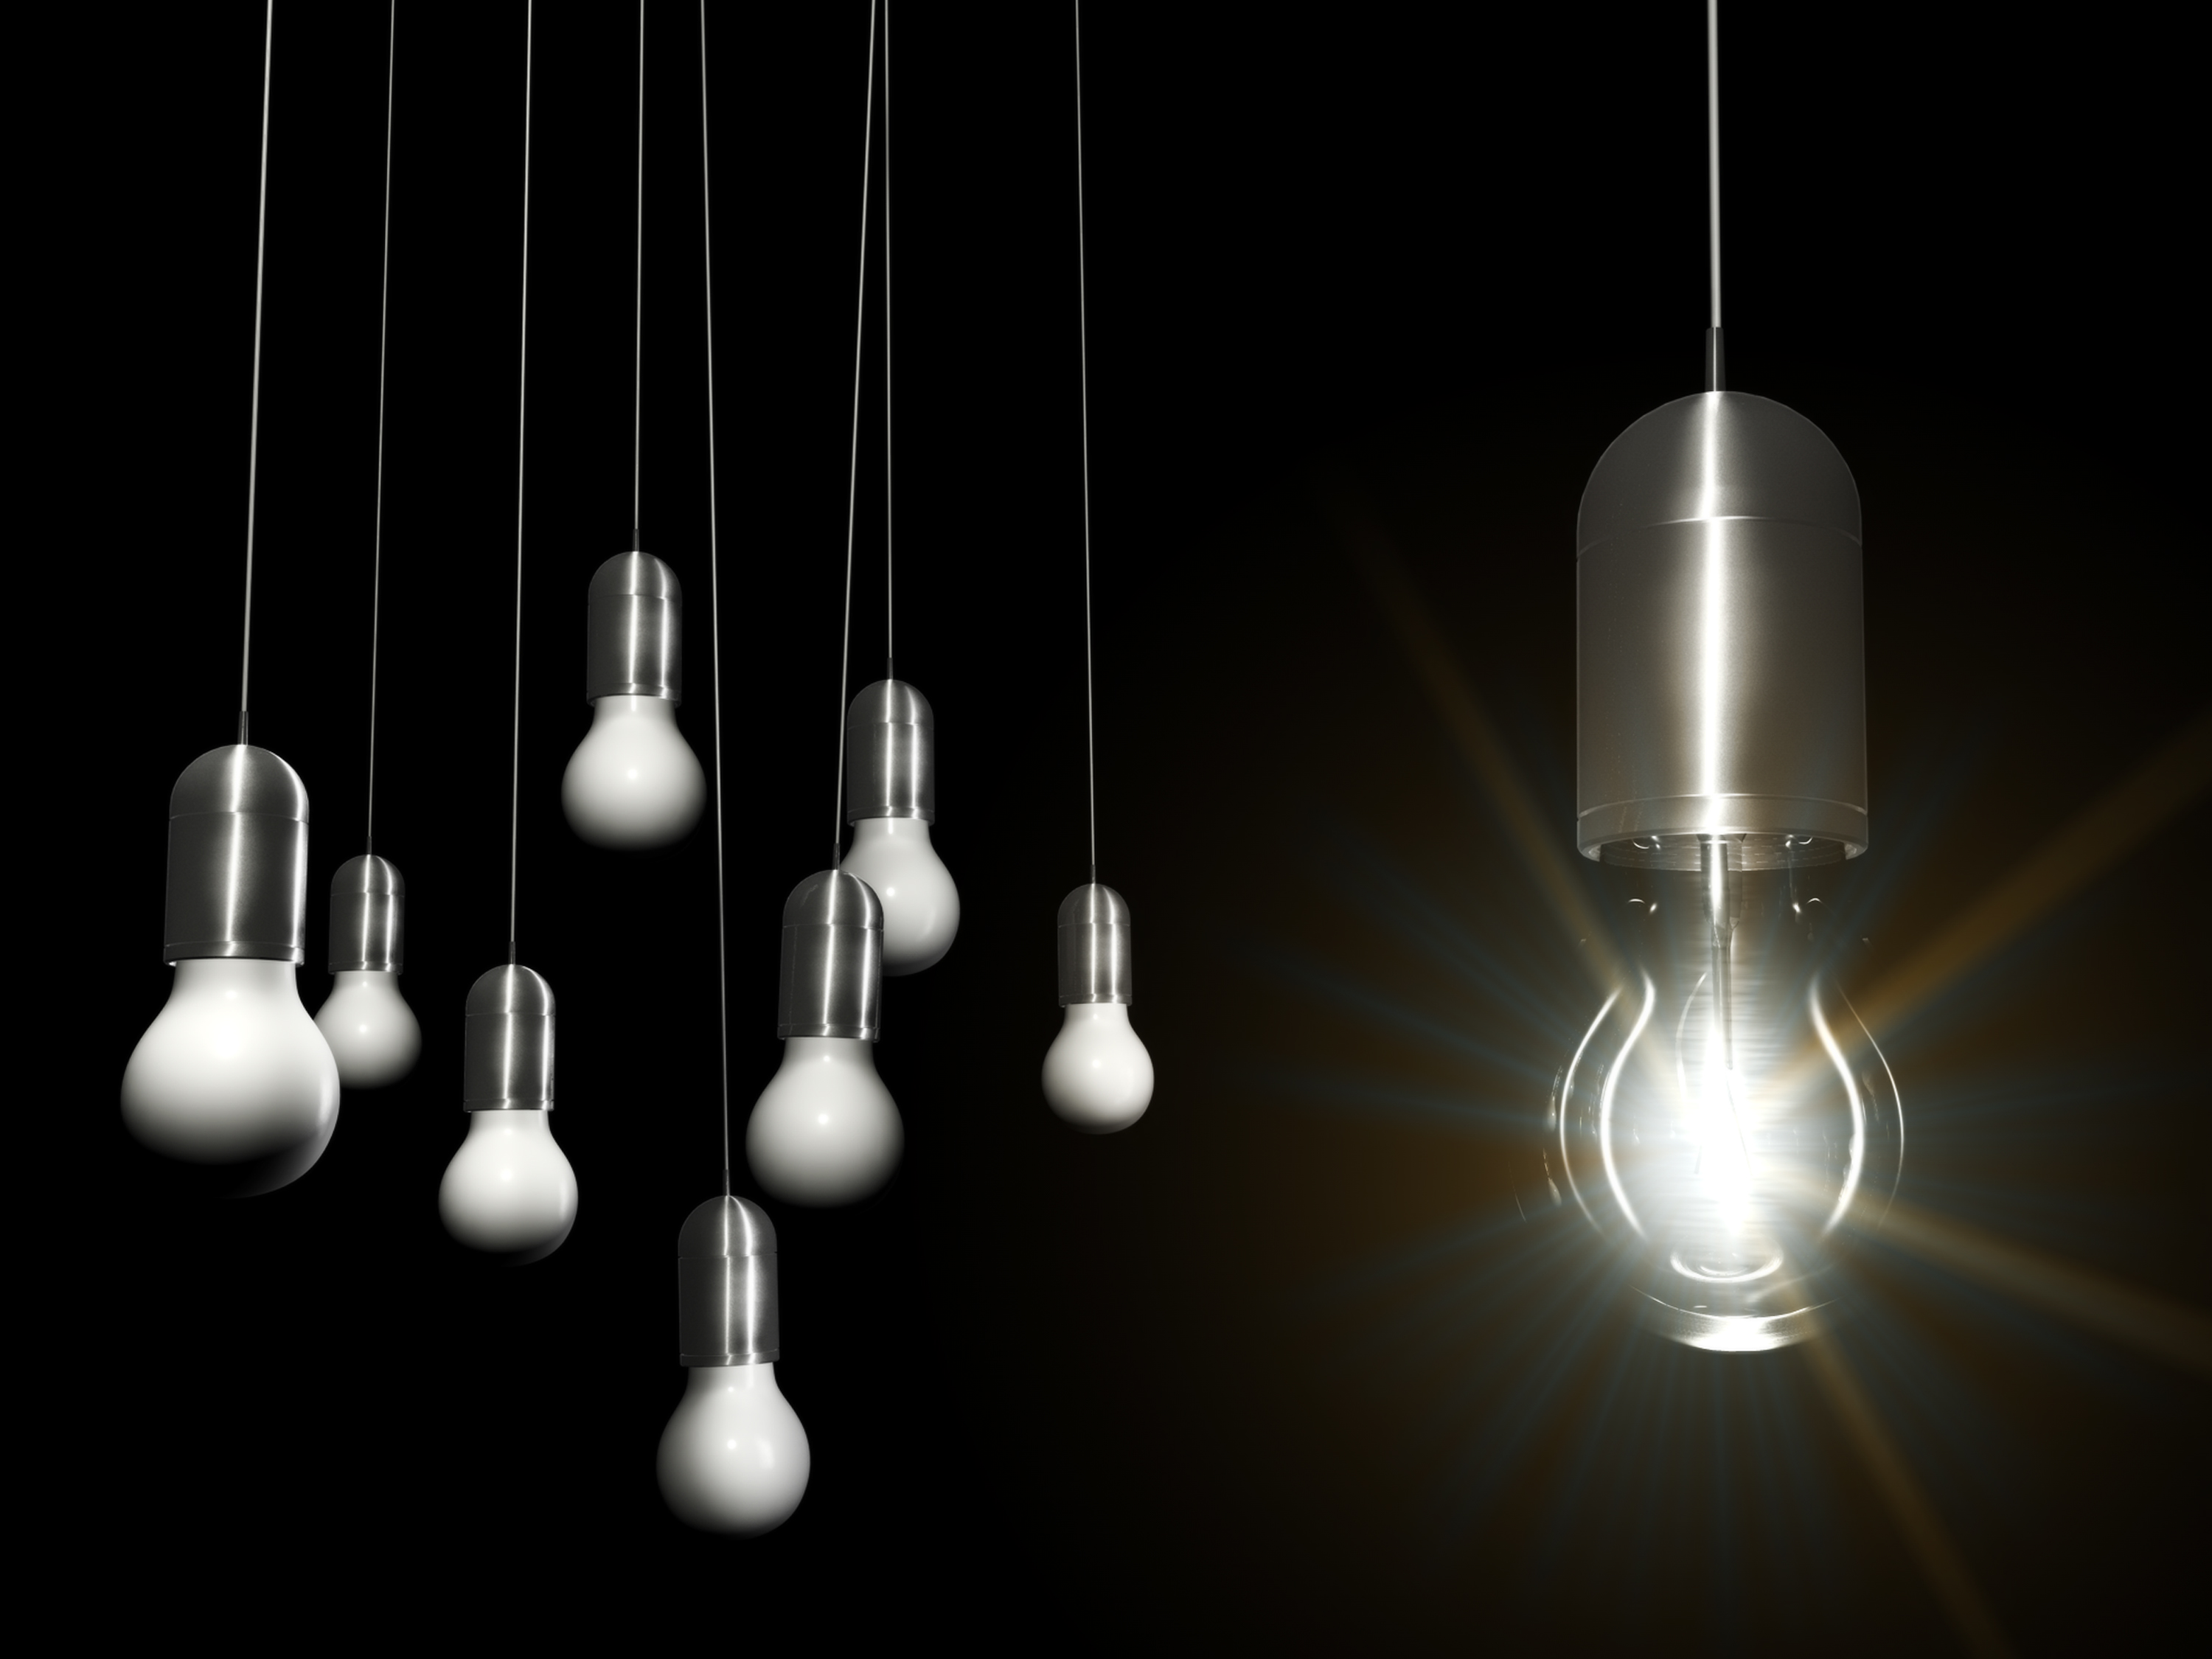 General Electric executive shares 3 ways entrepreneurs can infuse innovation in business